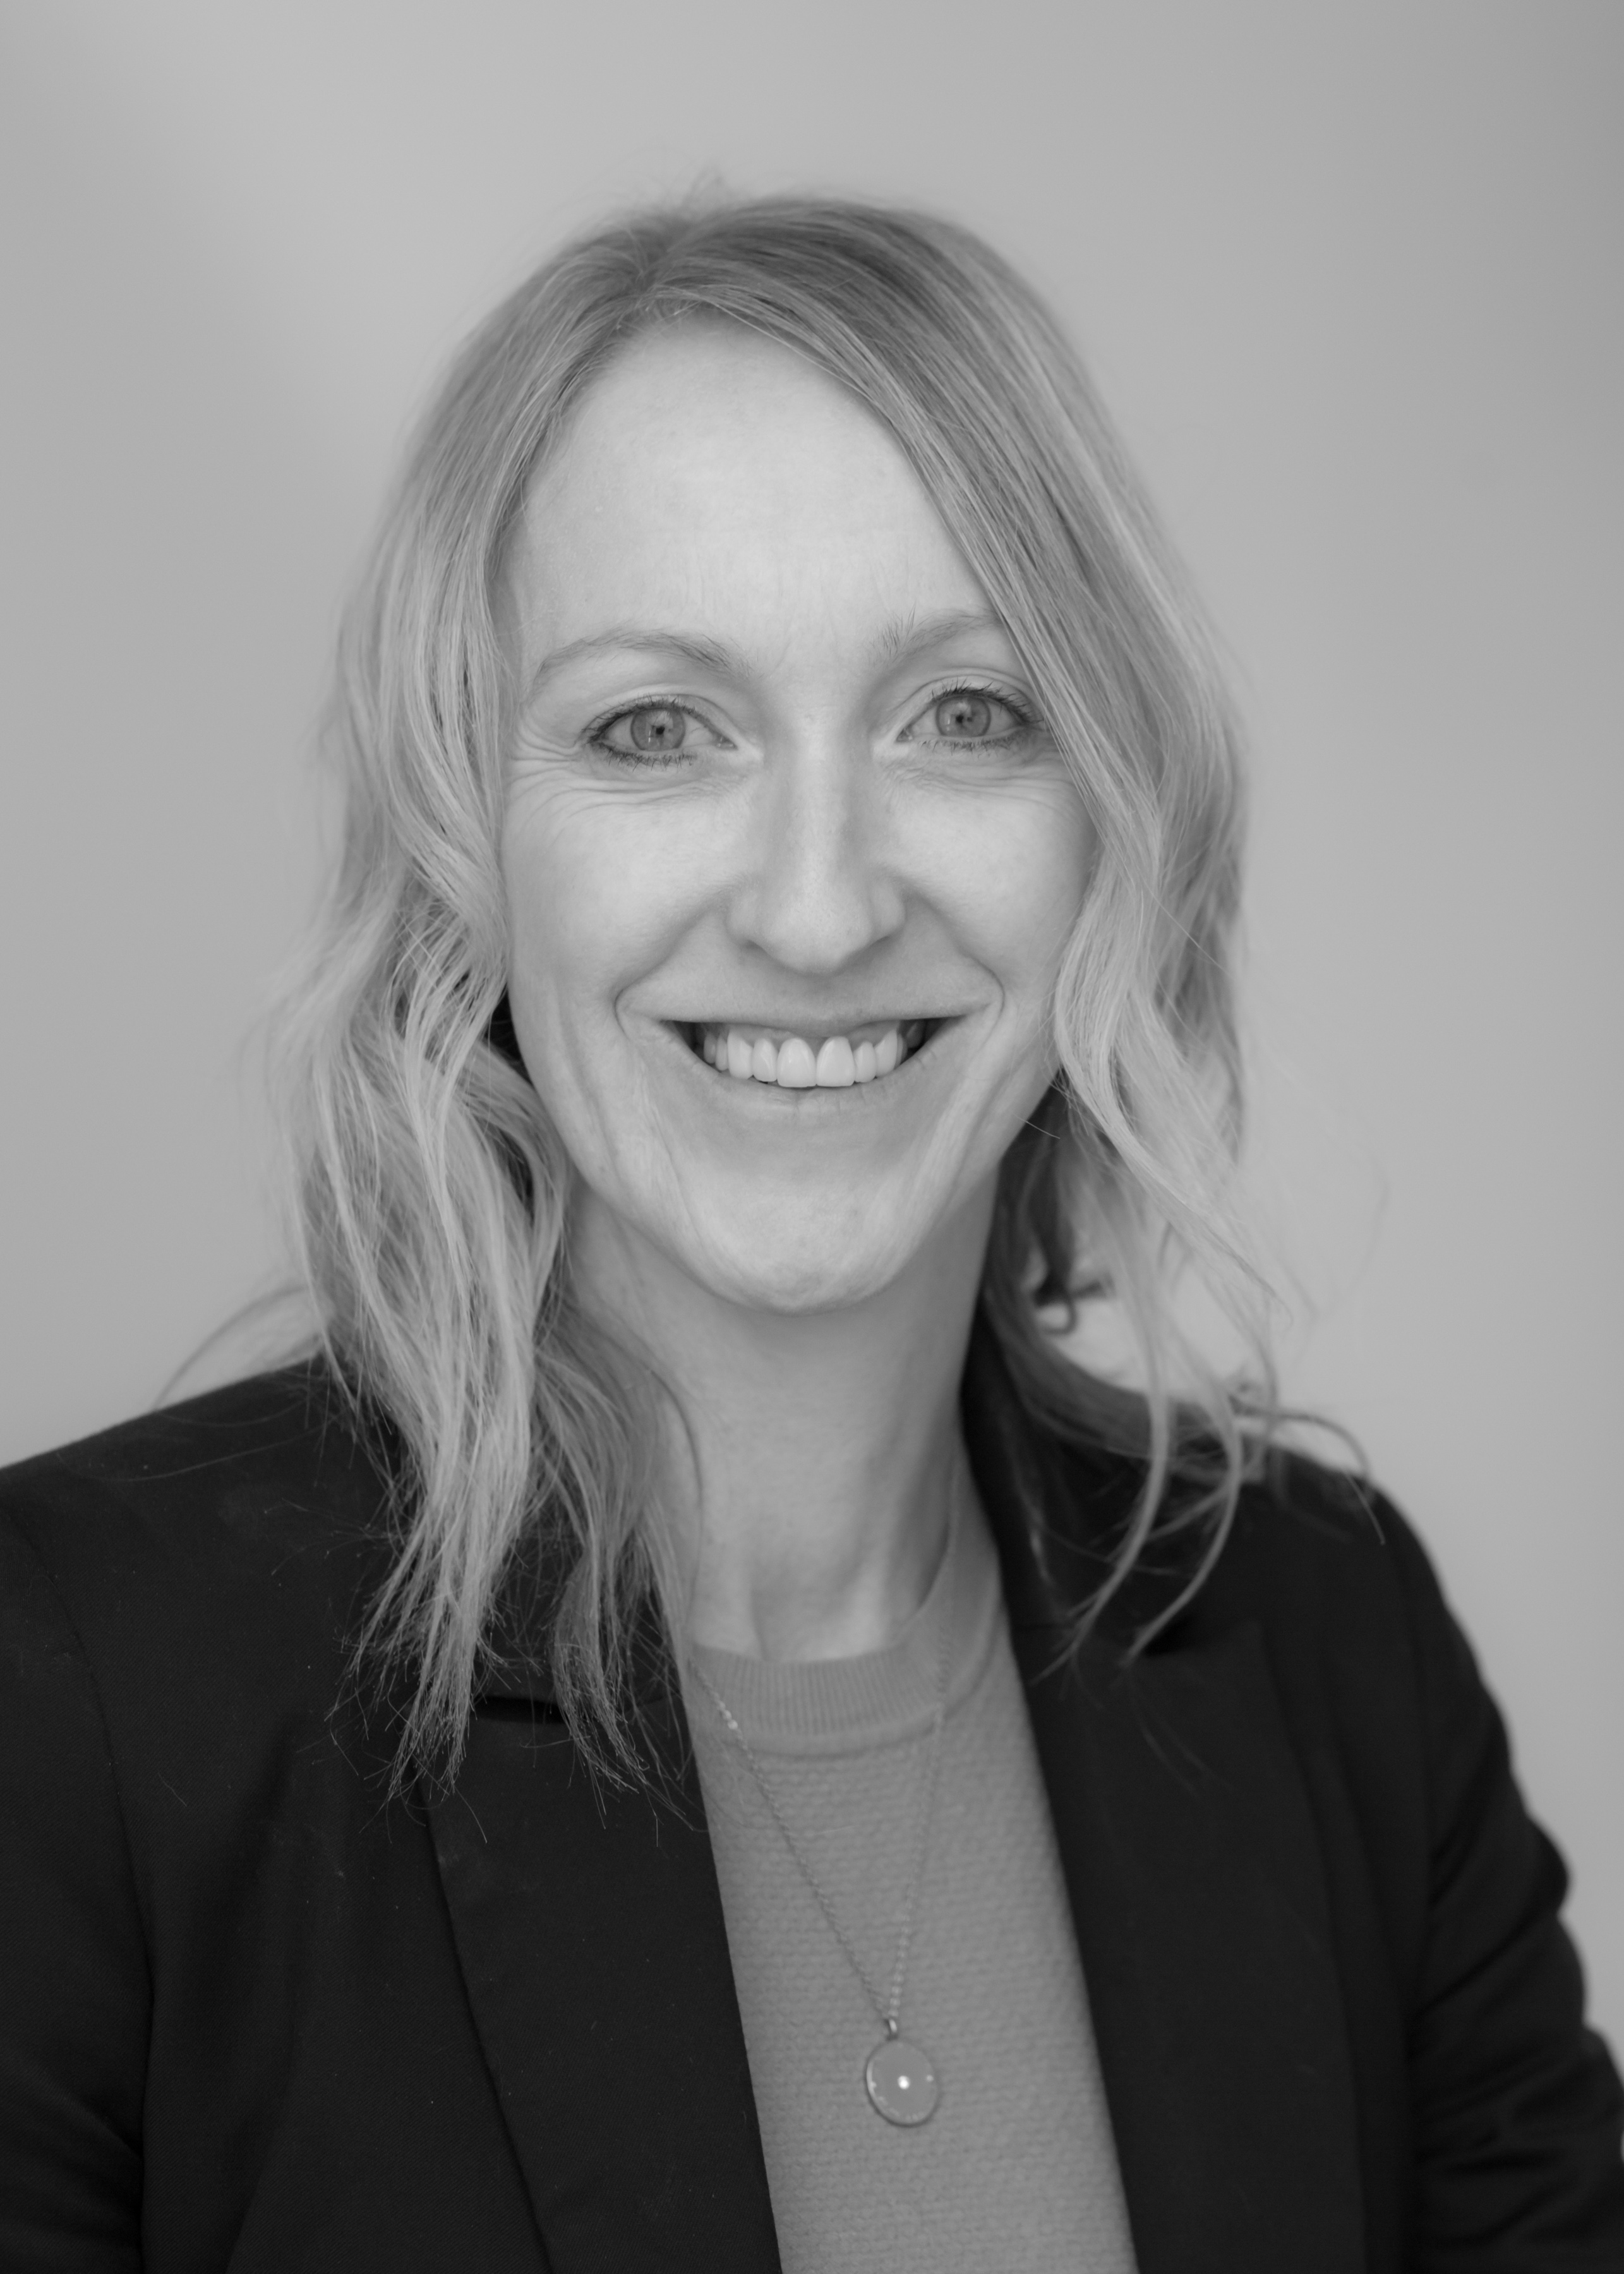 A black and white image of Jo McCully, Financial Services Administration Assistant at Ethical Investment Services.